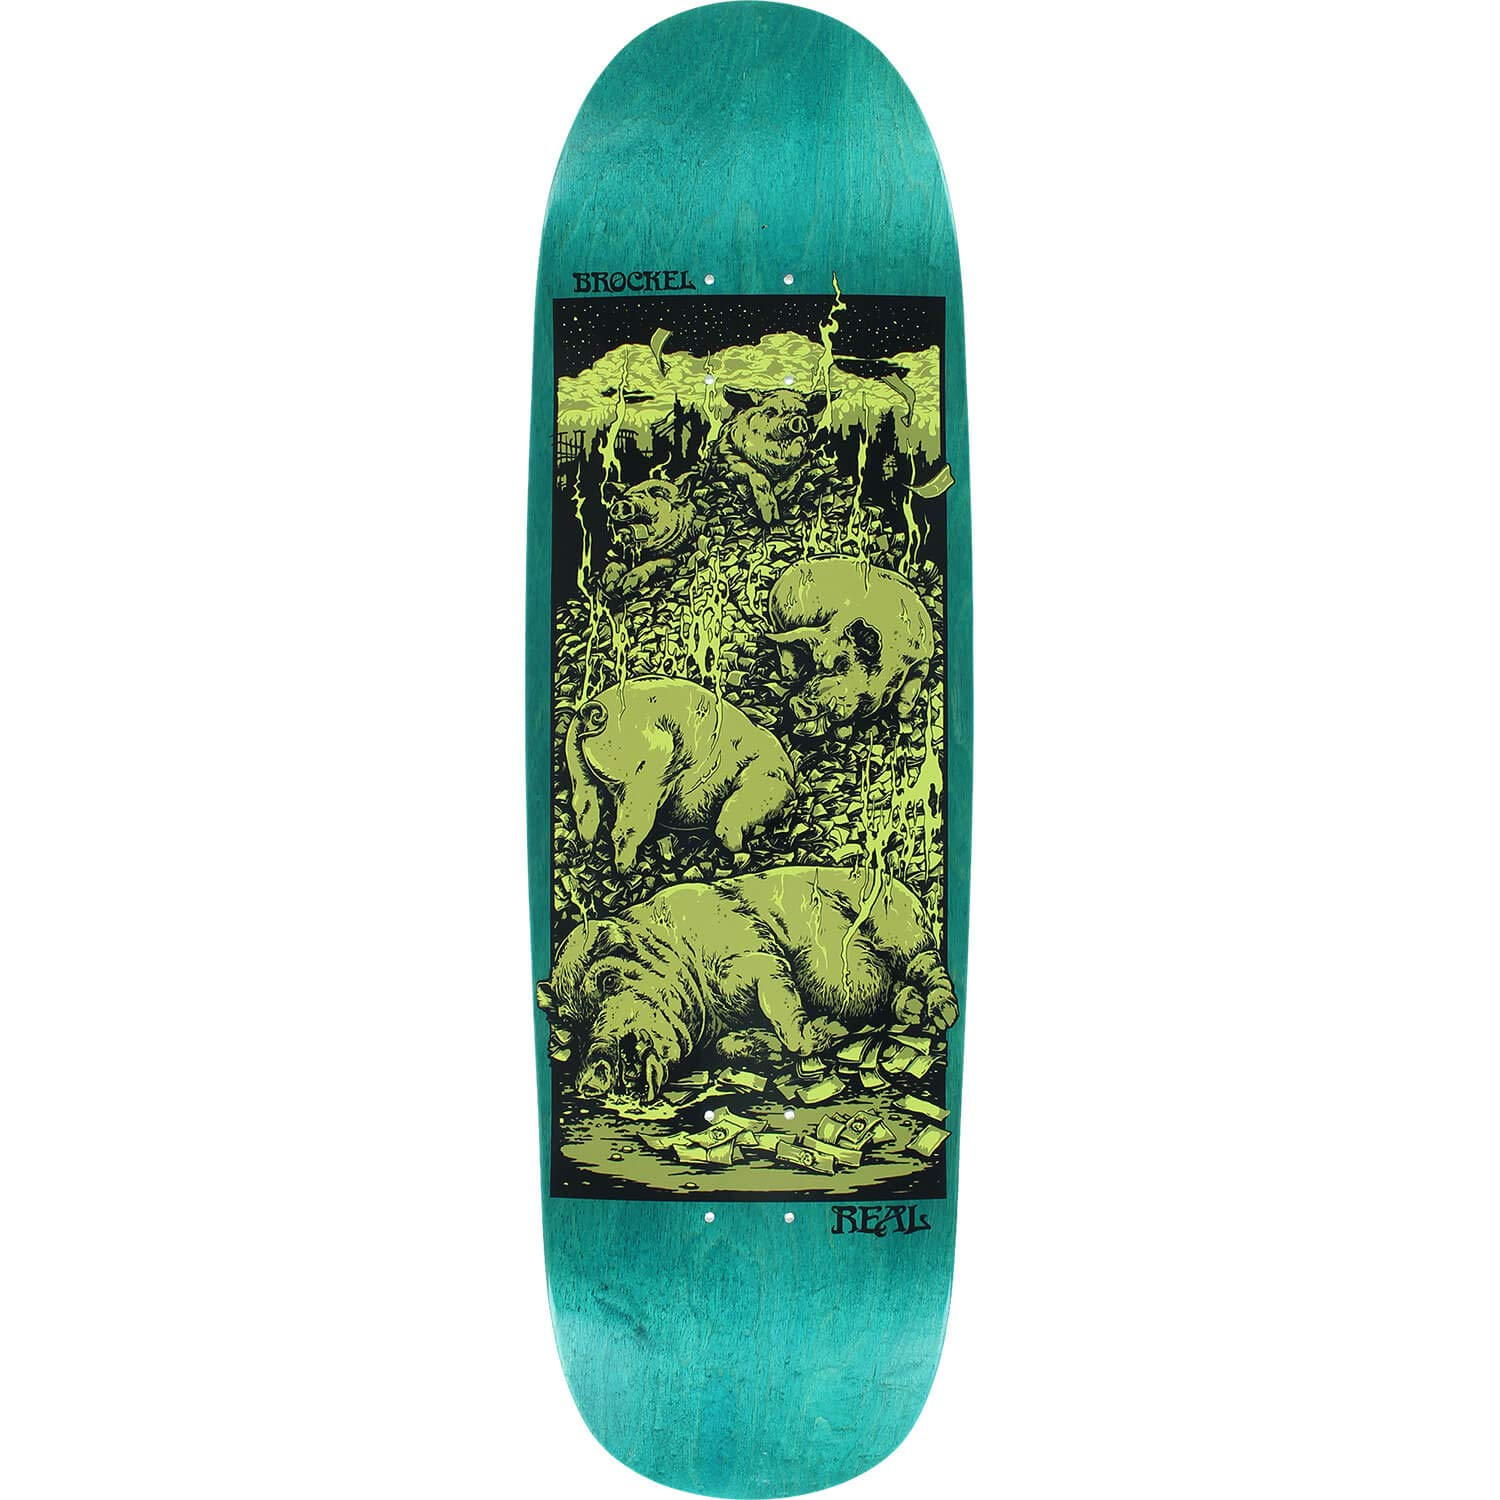 Real Skateboards RobbieブロッケルPigs in Zenブラウン/グロースケートボードデッキ – 9.32